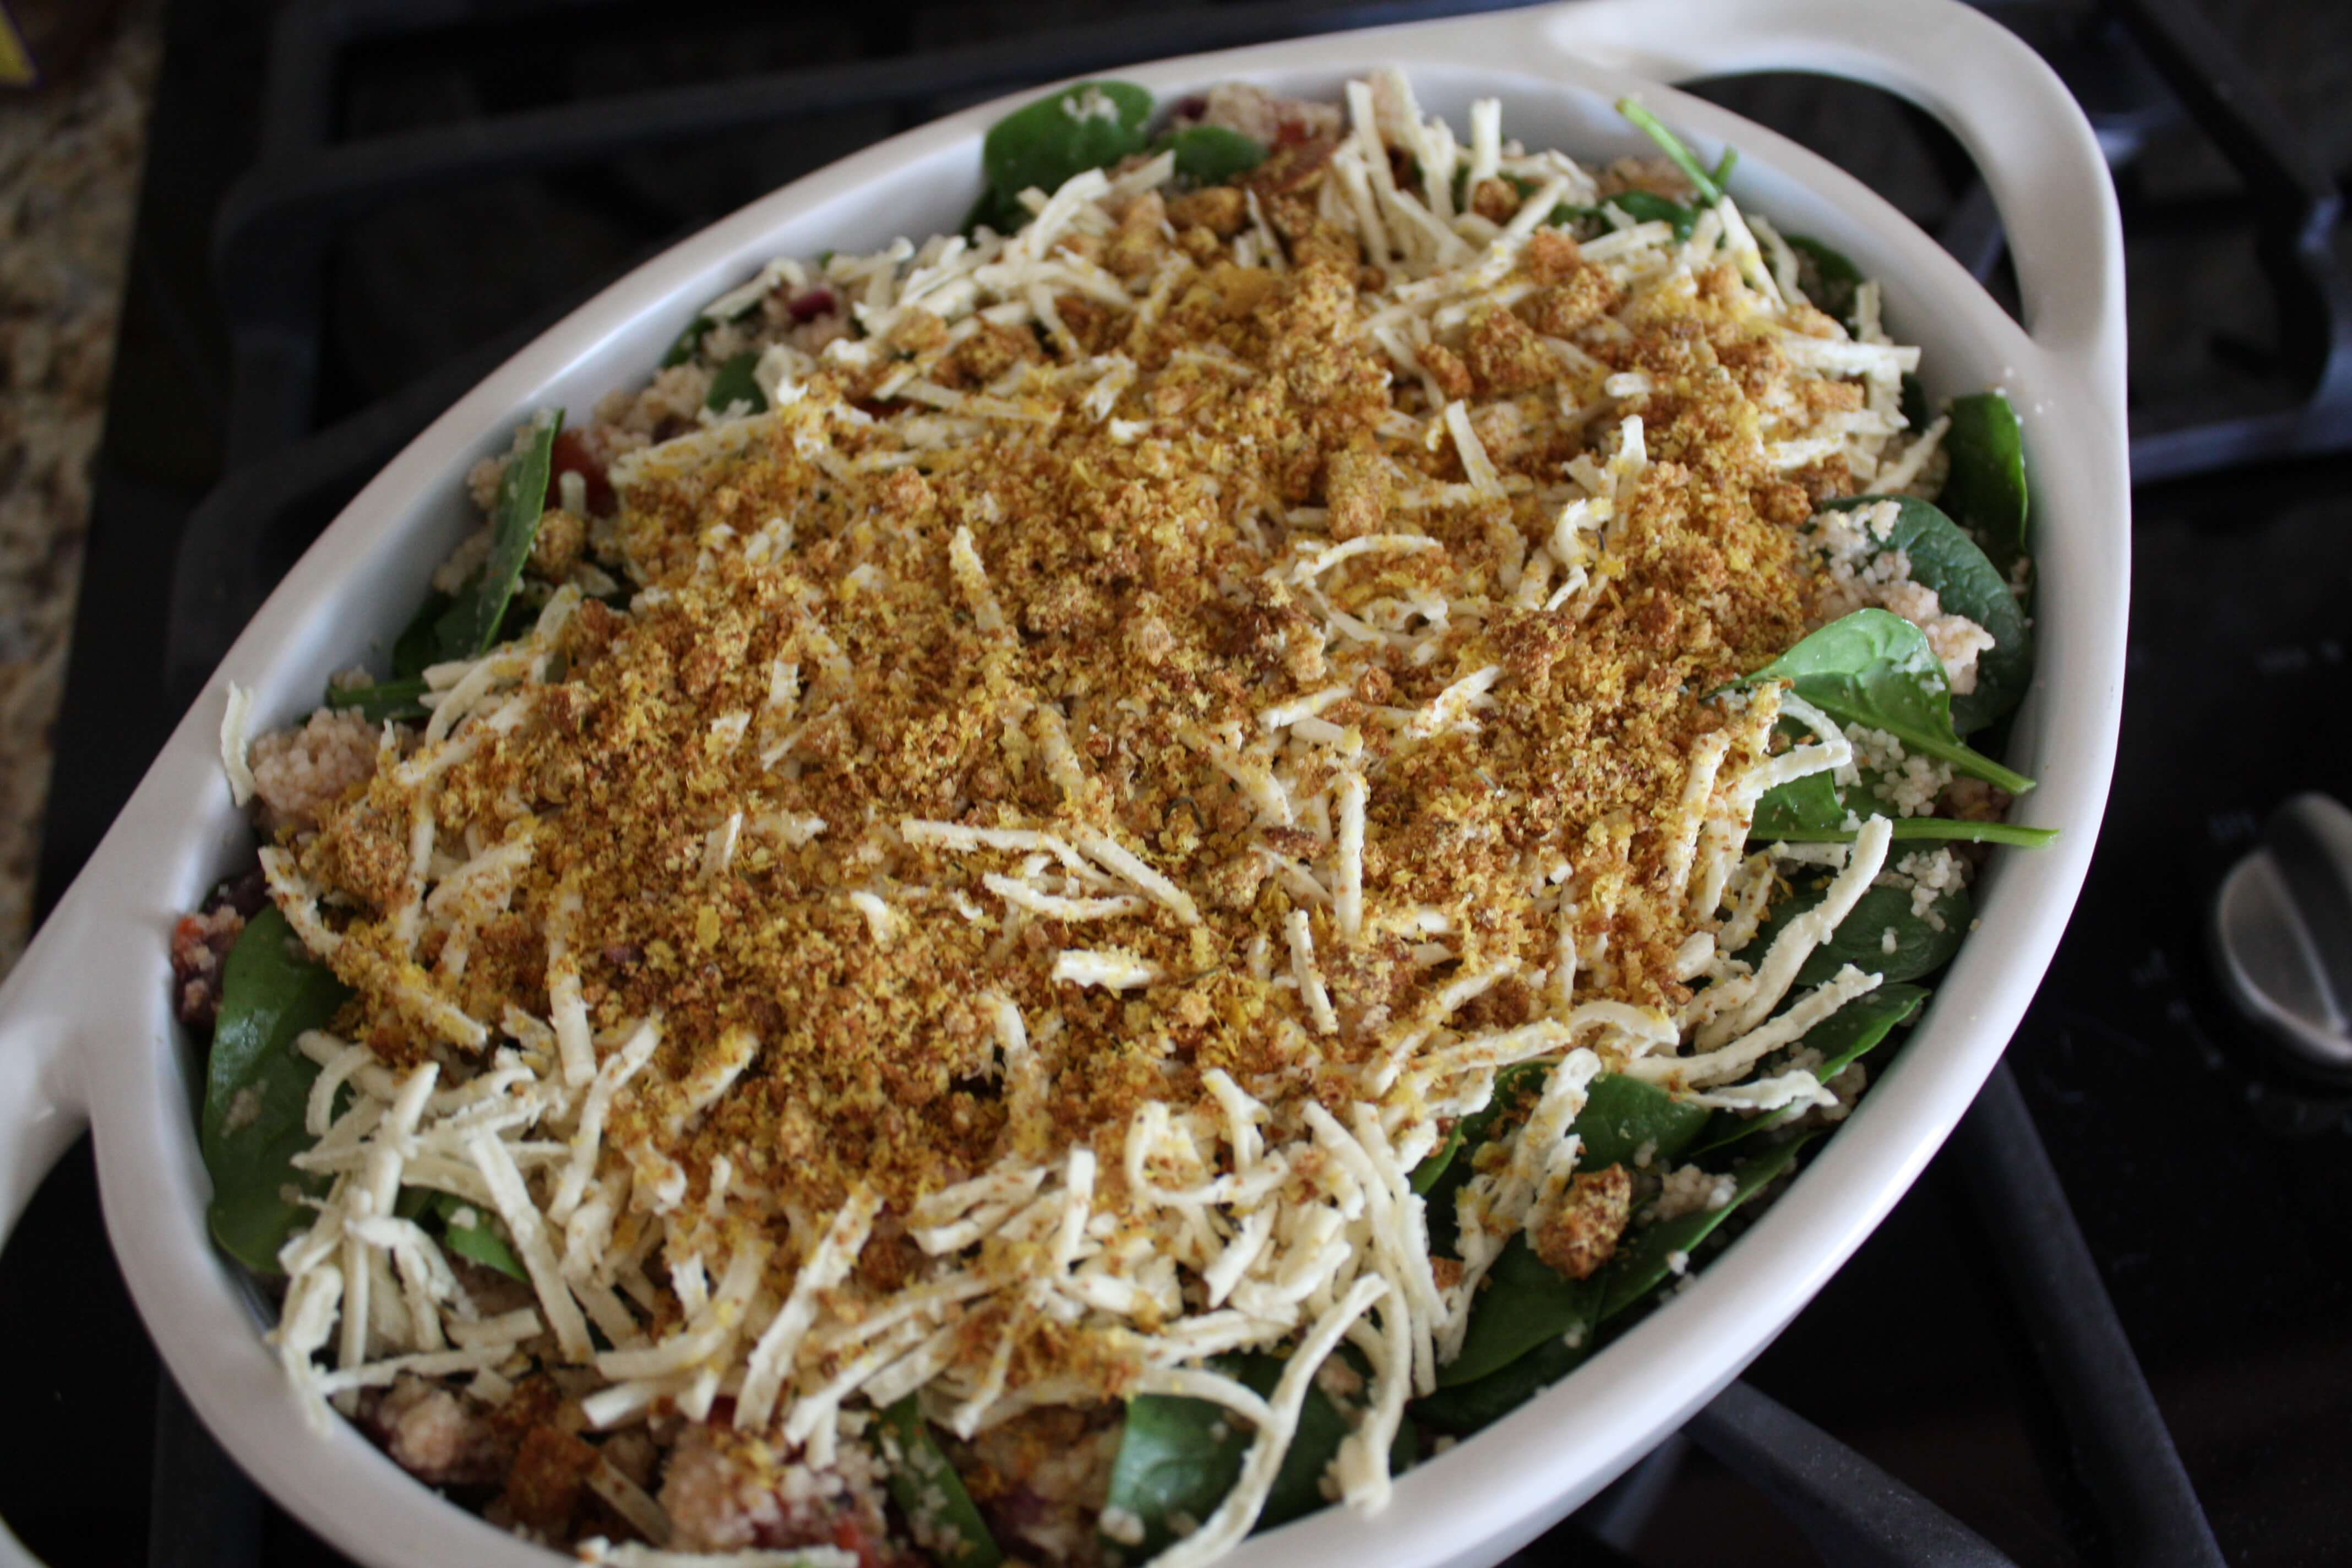 Sprinkle with cheese and top evenly with breadcrumbs